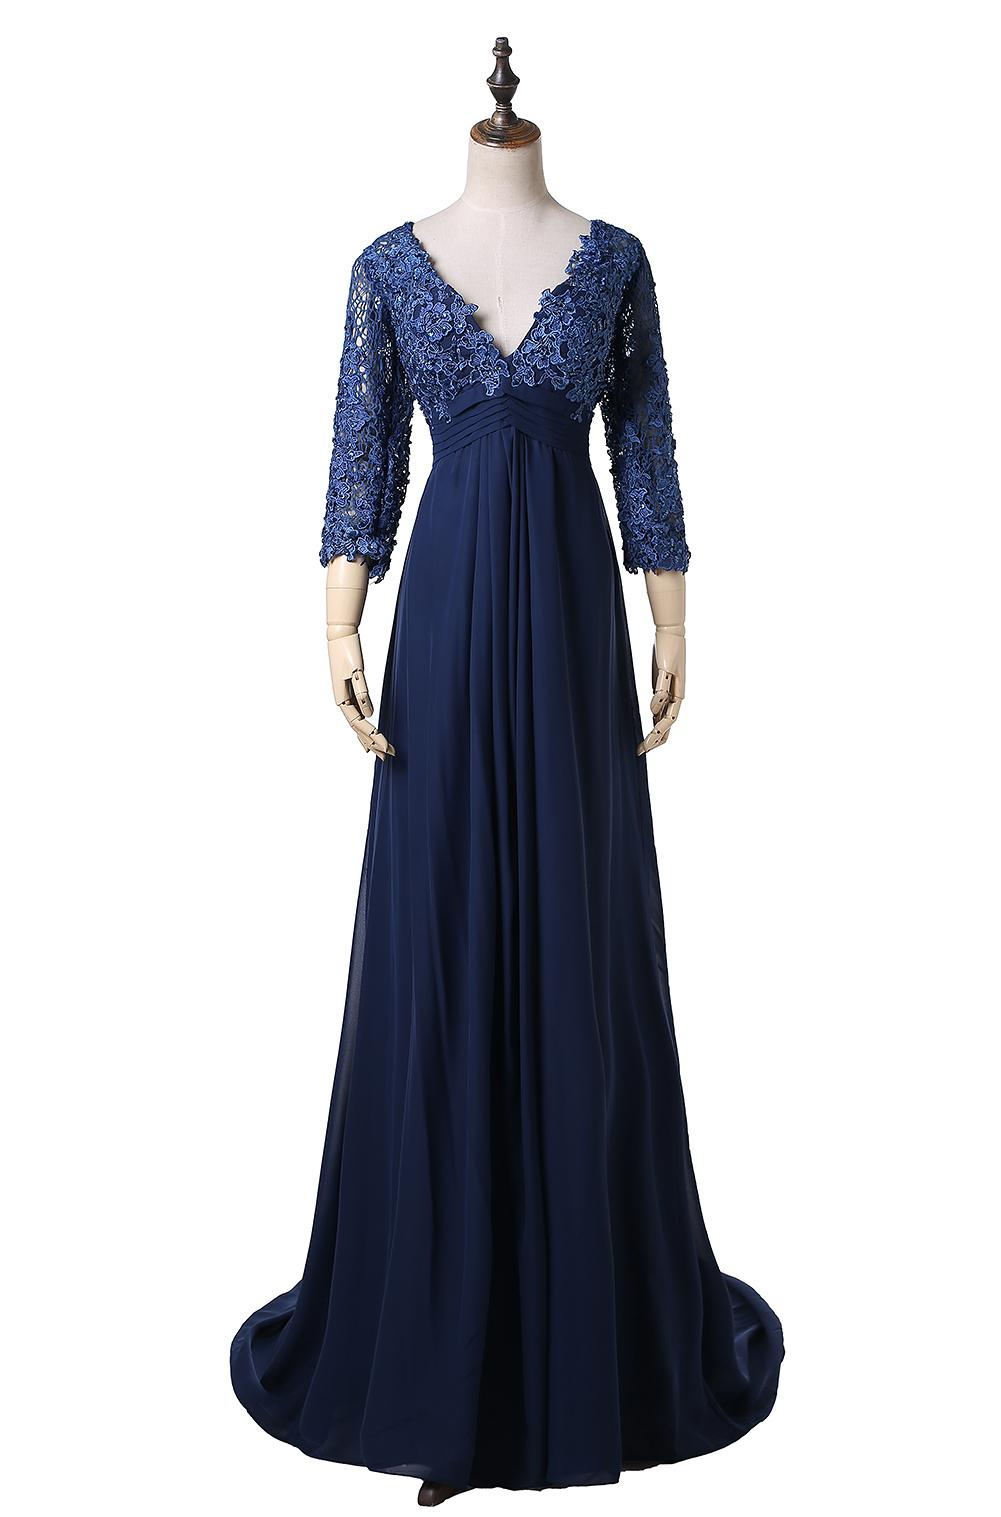 Hot Selling Empire Navy Evening Dresses 3/4 Sleeve V-Neck Lace Chiffon Floor Length Party Gowns Zipper Back Custom Made E228